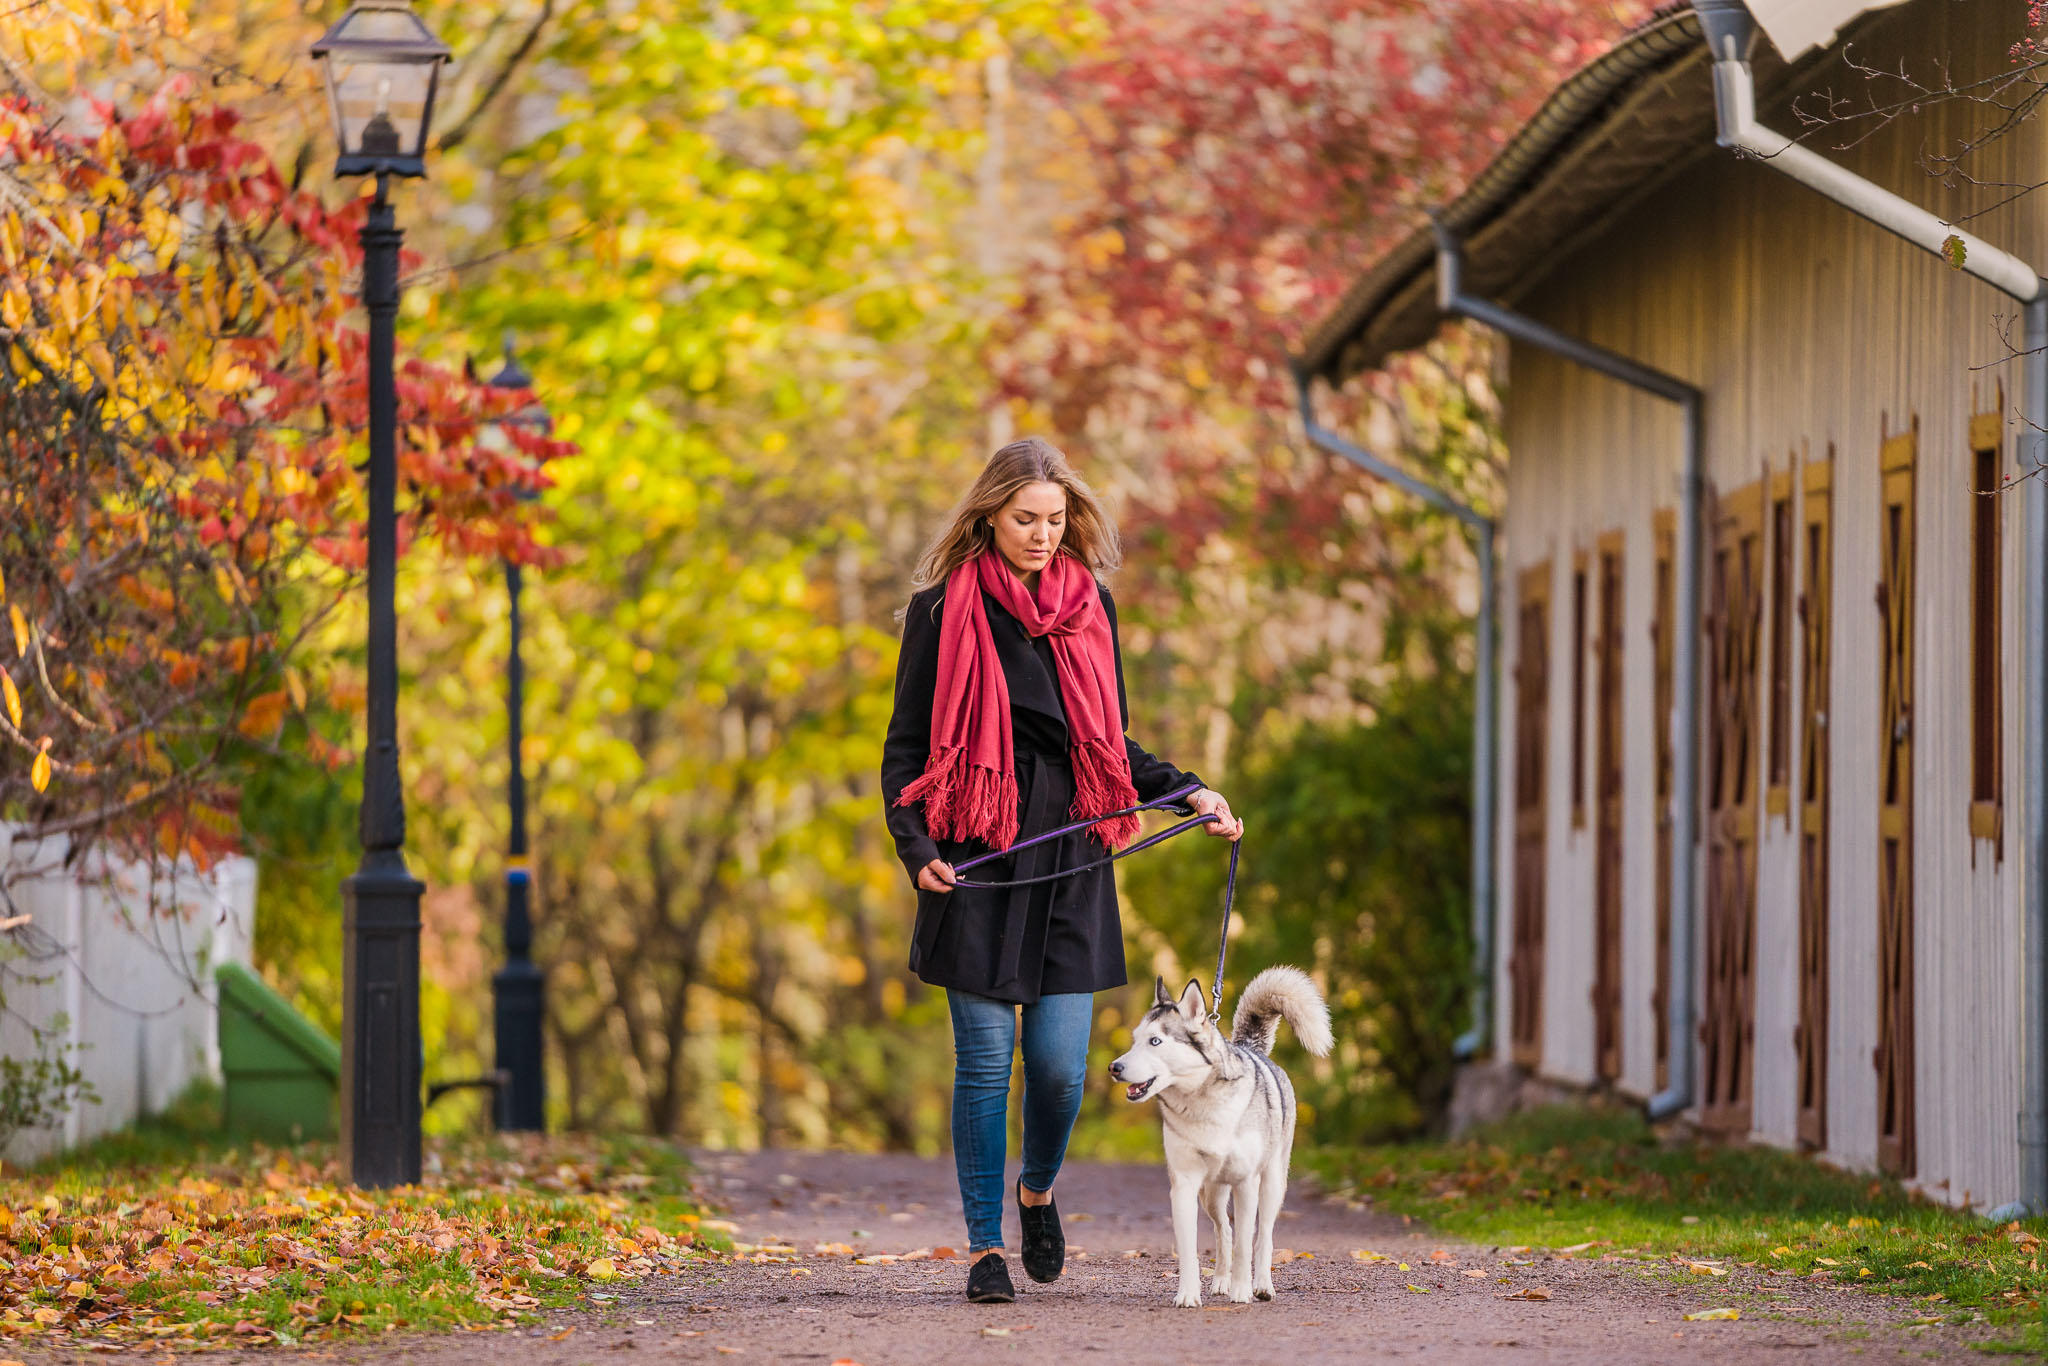 hjo-sweden-woman-walk-with-dog-autumn